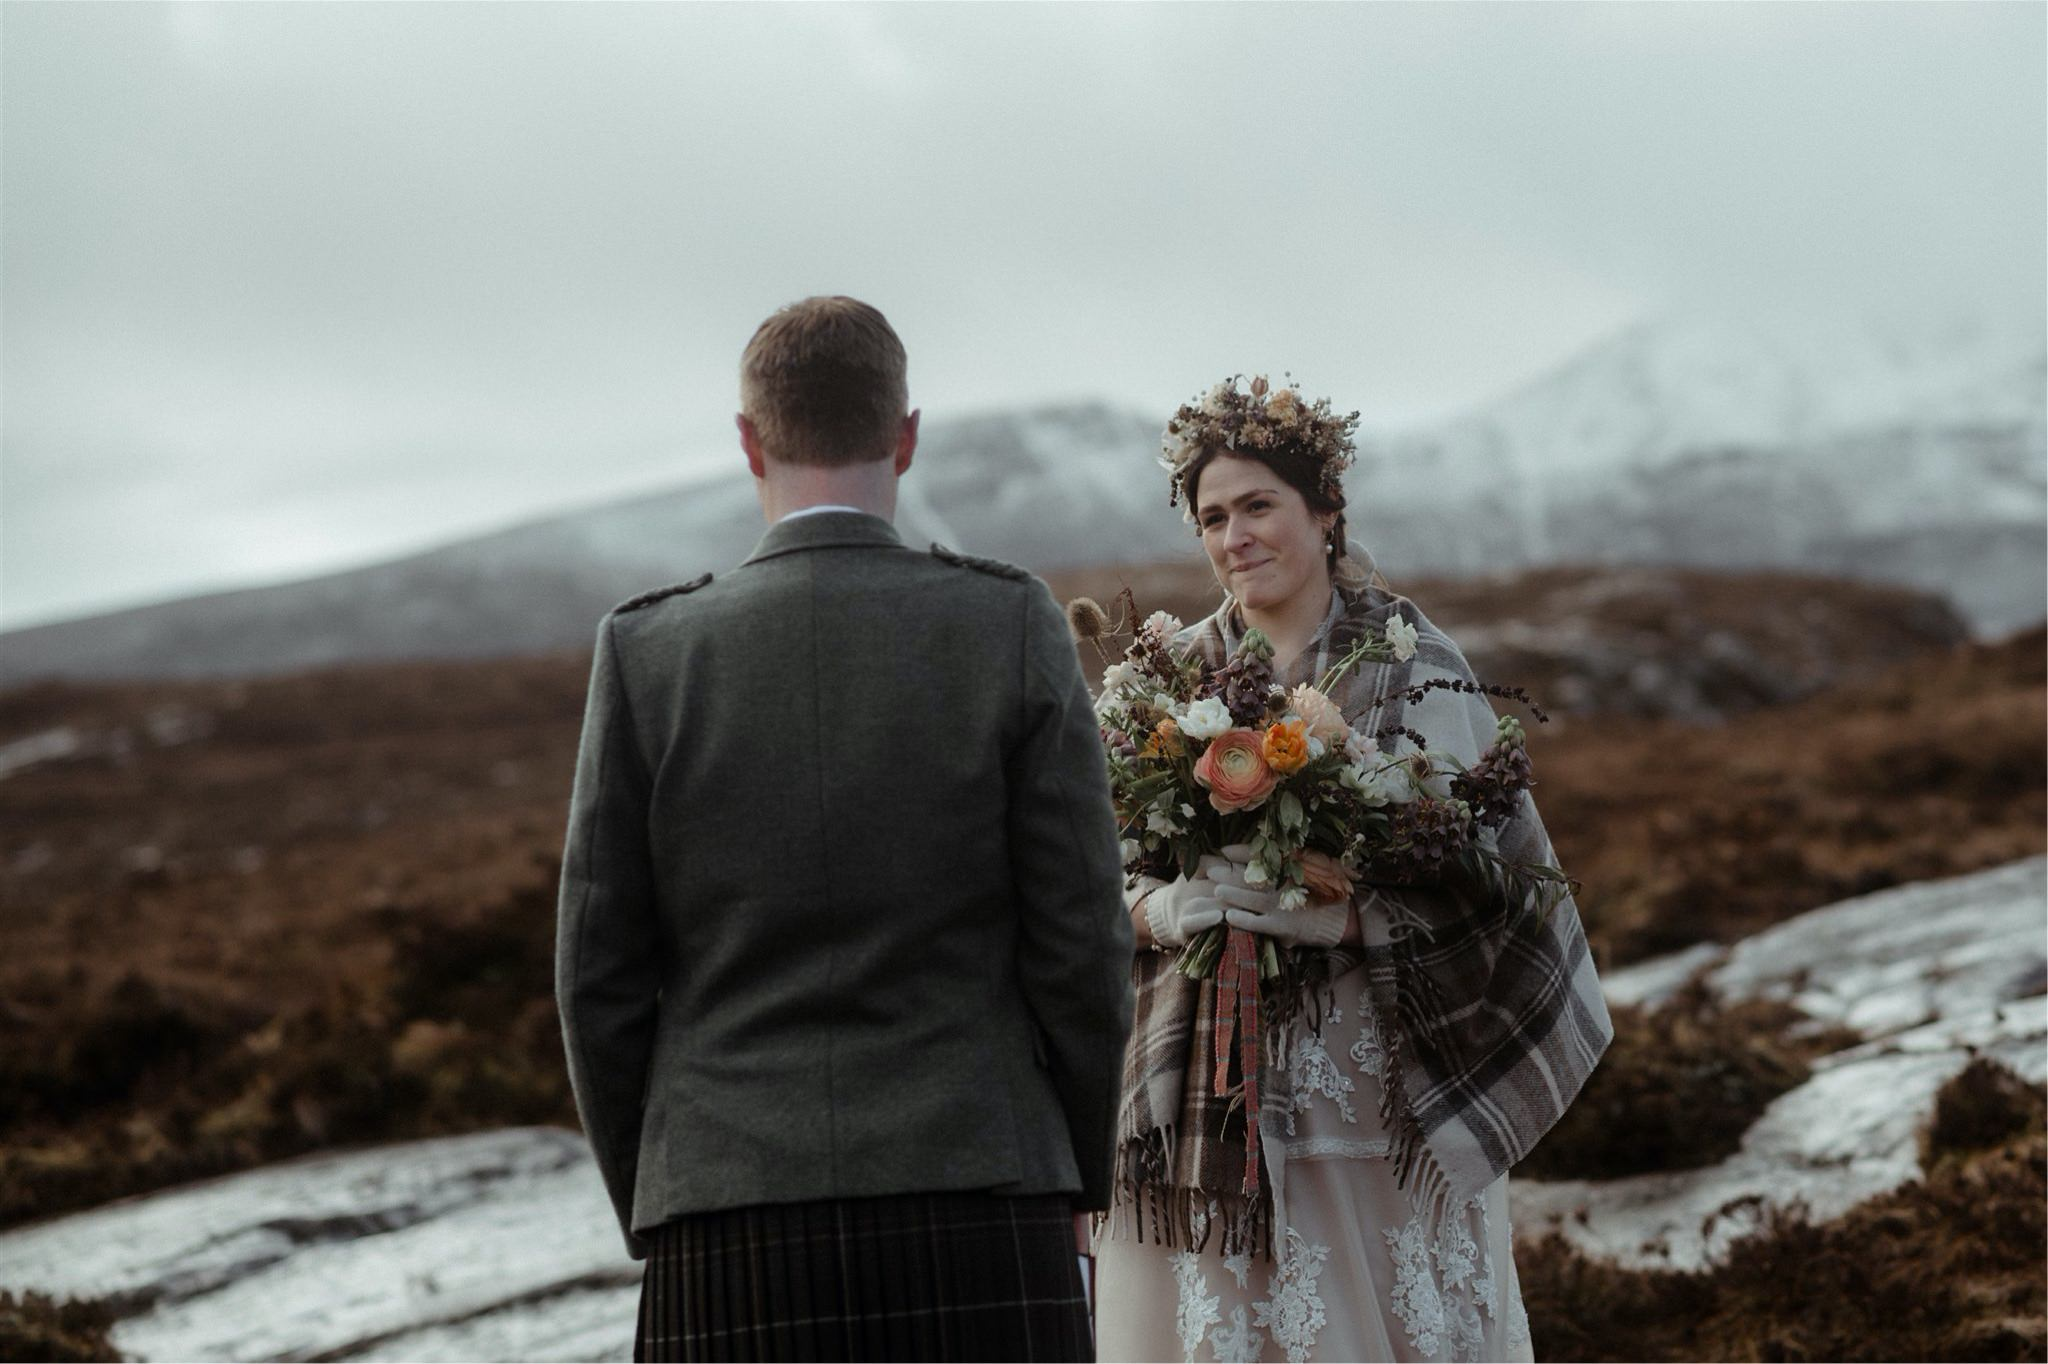 Bride looking at groom lovingly during a Scotland elopement wedding in Assynt